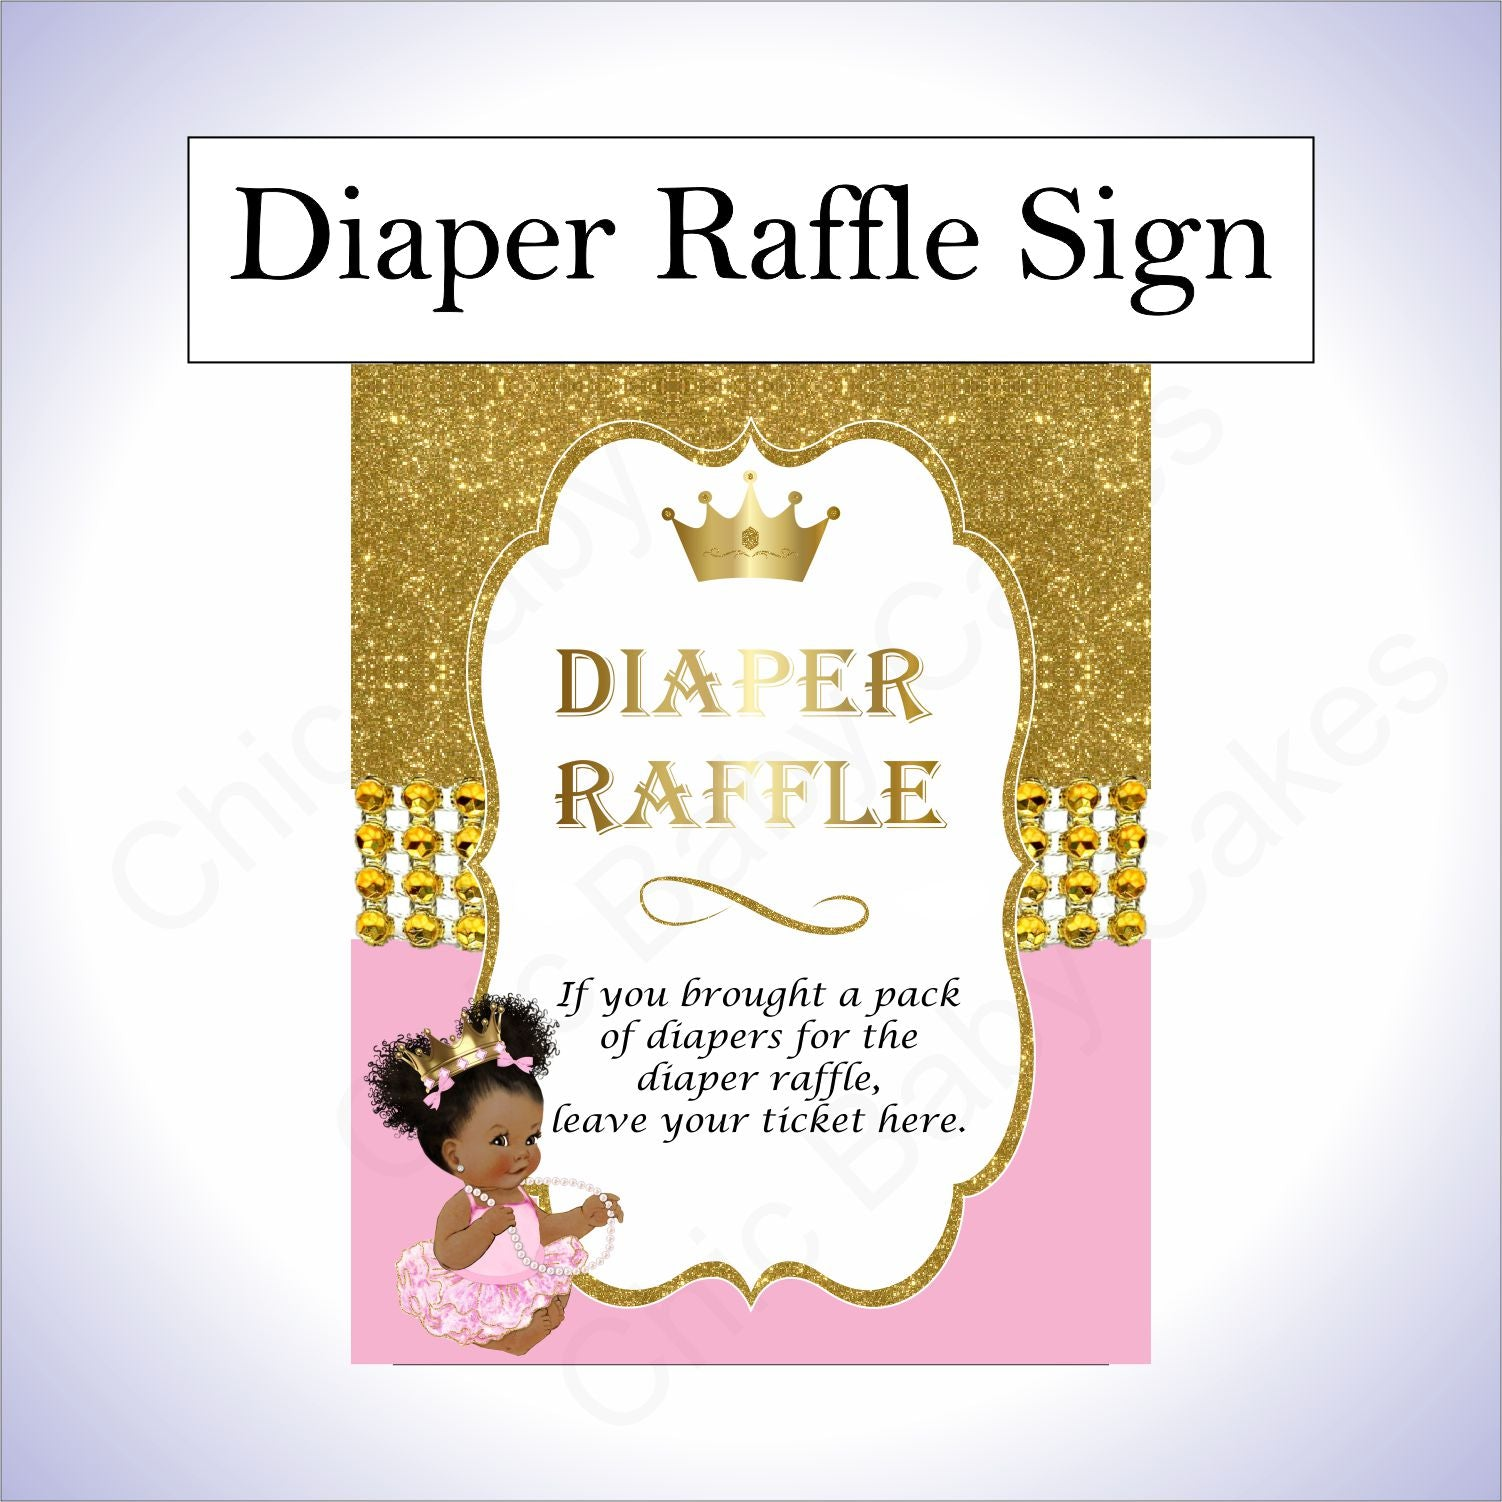 Princess Diaper Raffle Sign - Pink, Gold